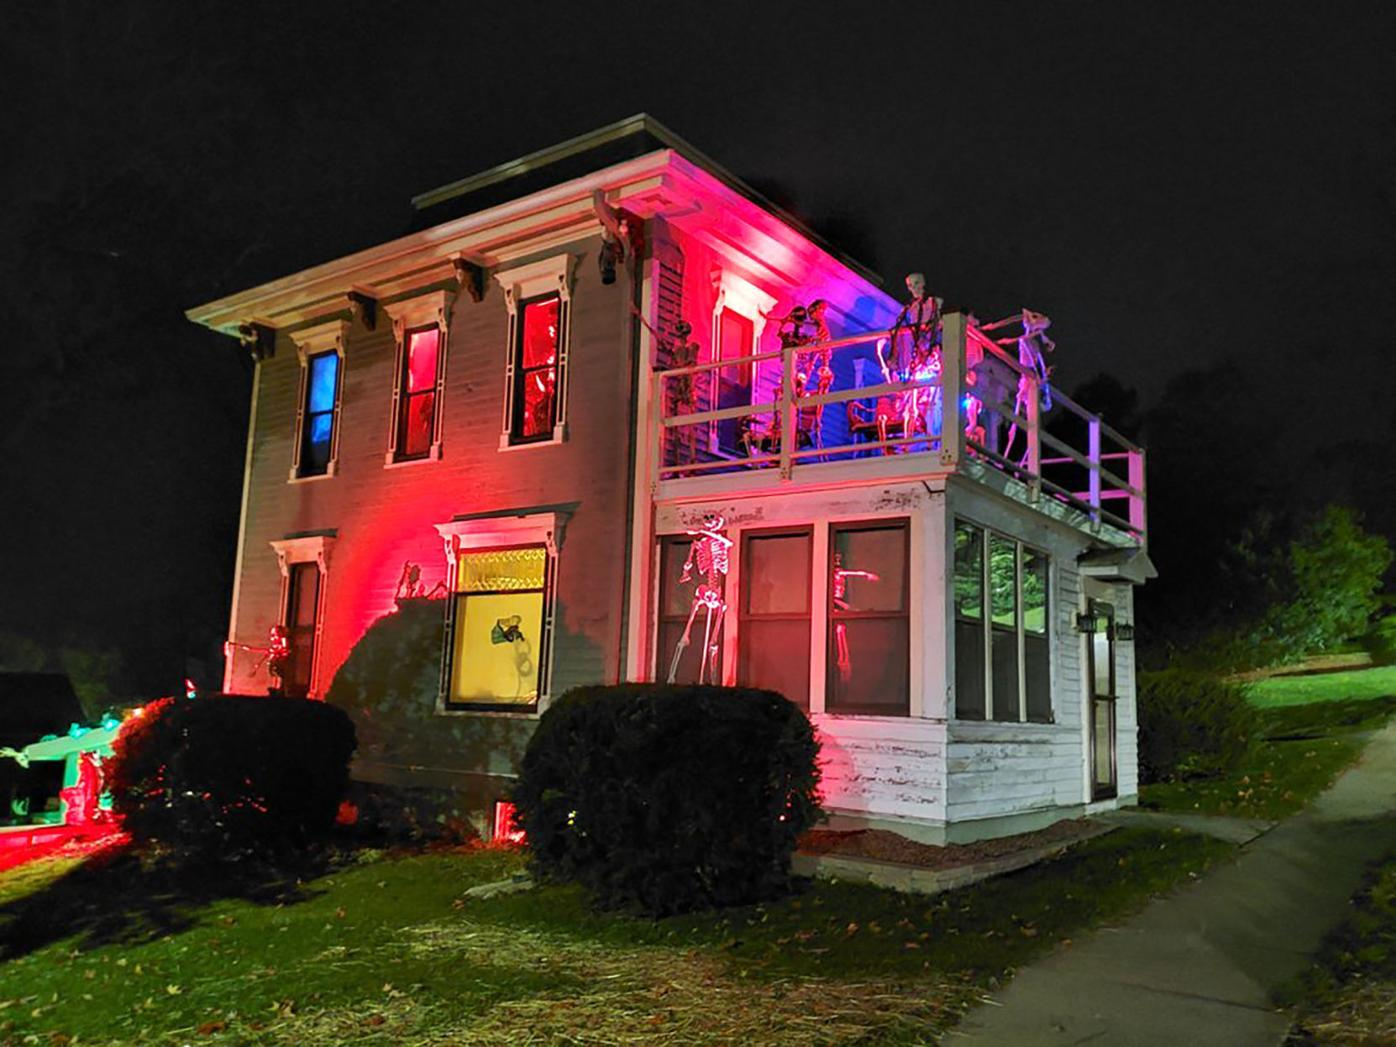 House decorating contest first place.jpg